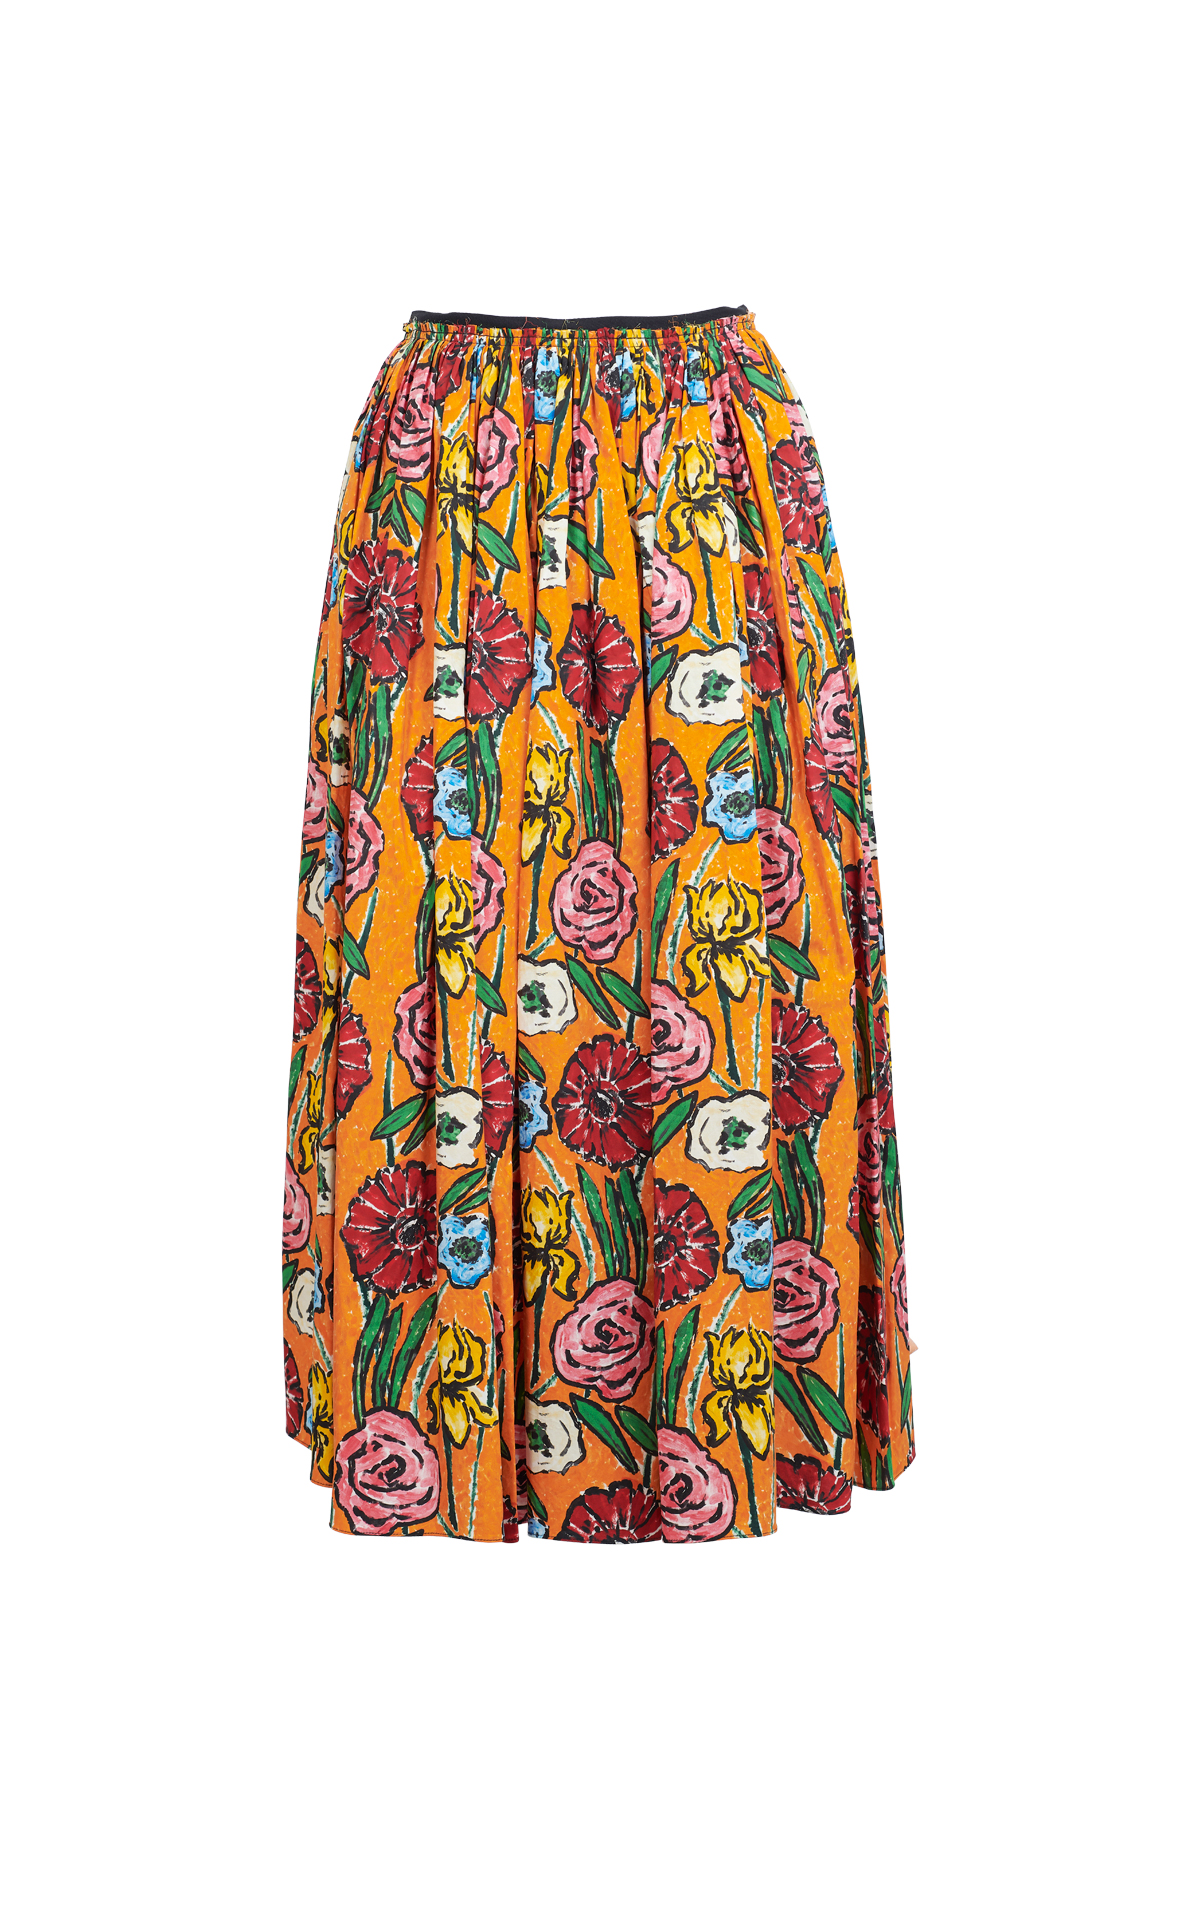 Printed skirt with flowers for woman Marni